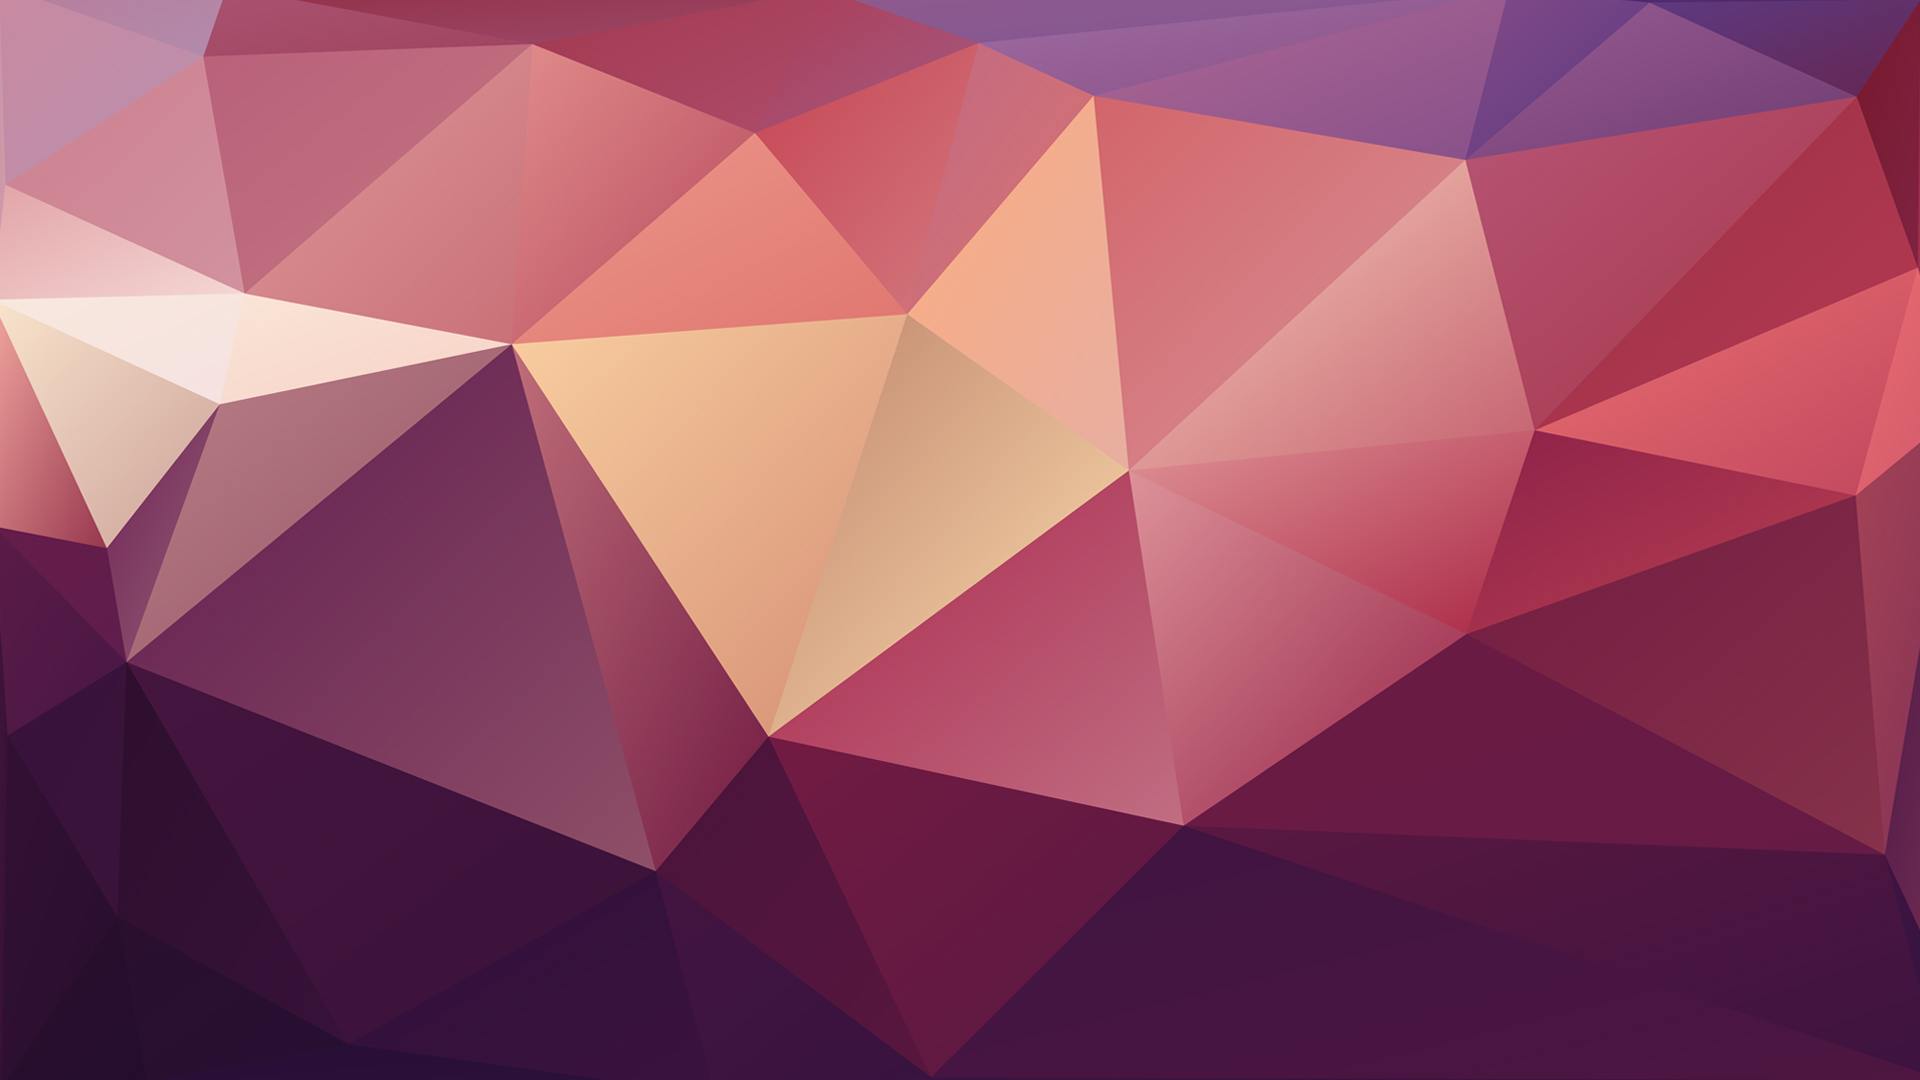 Abstract Geometric Wallpapers - WallpaperSafari